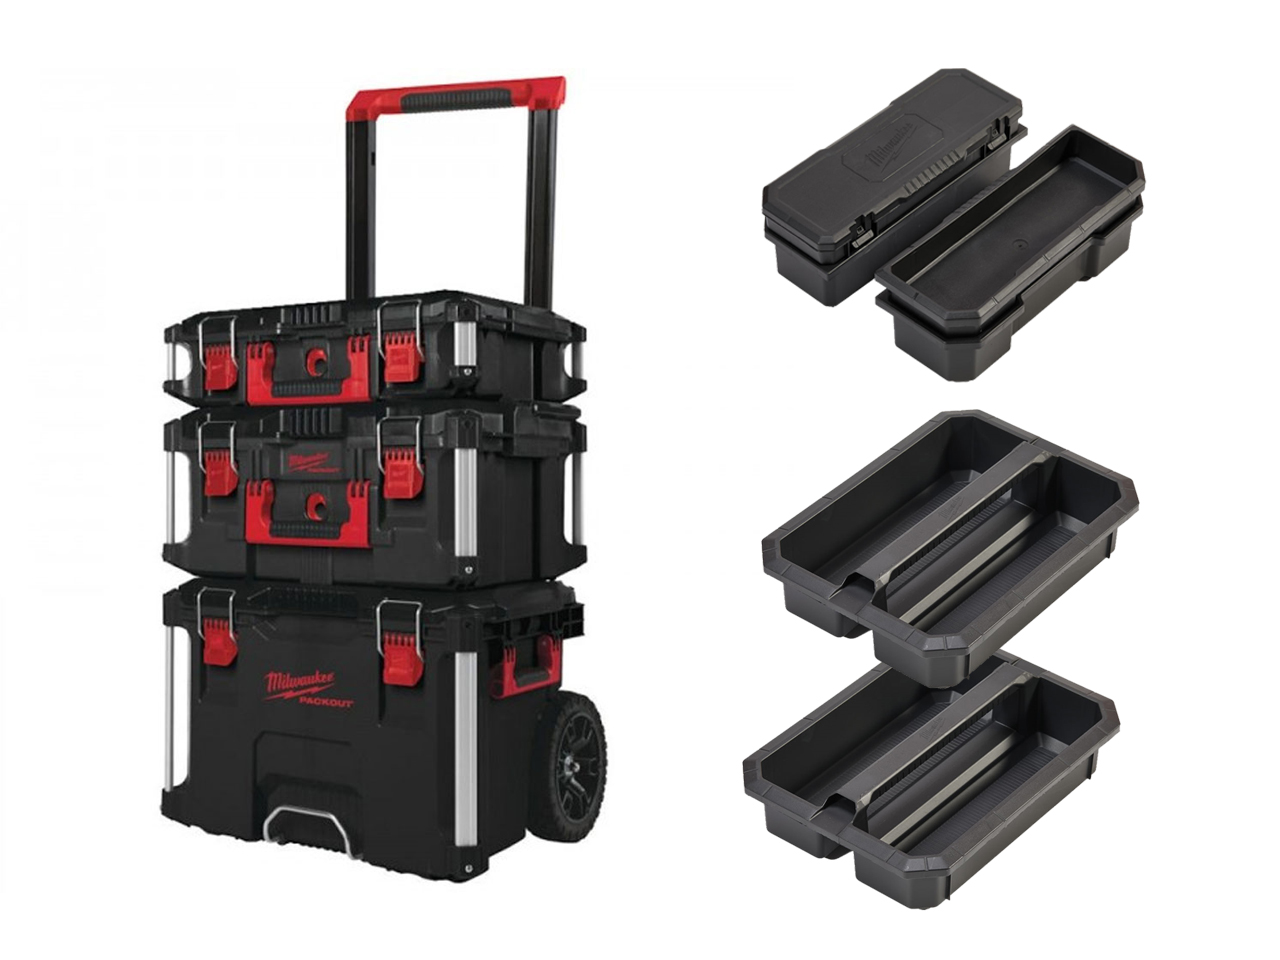 Milwaukee Packout - Packout Trolley / Box 2 / Box 3 & Inserts - 493246424-KIT